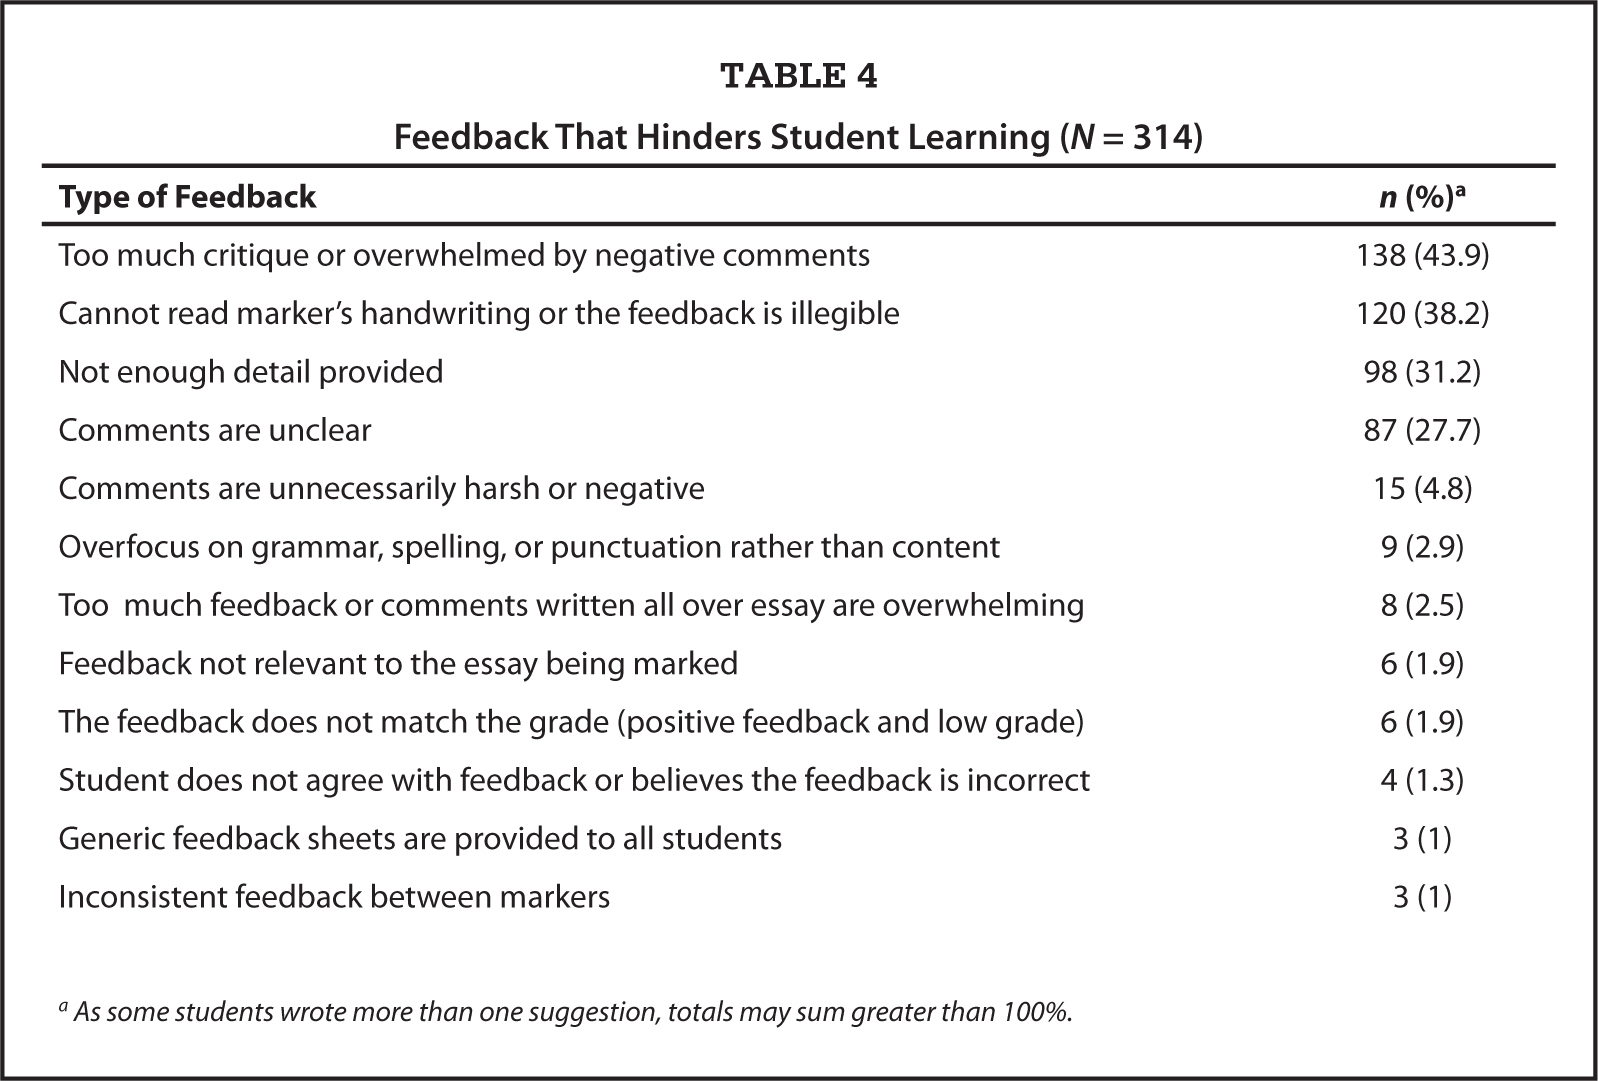 Feedback That Hinders Student Learning (N = 314)